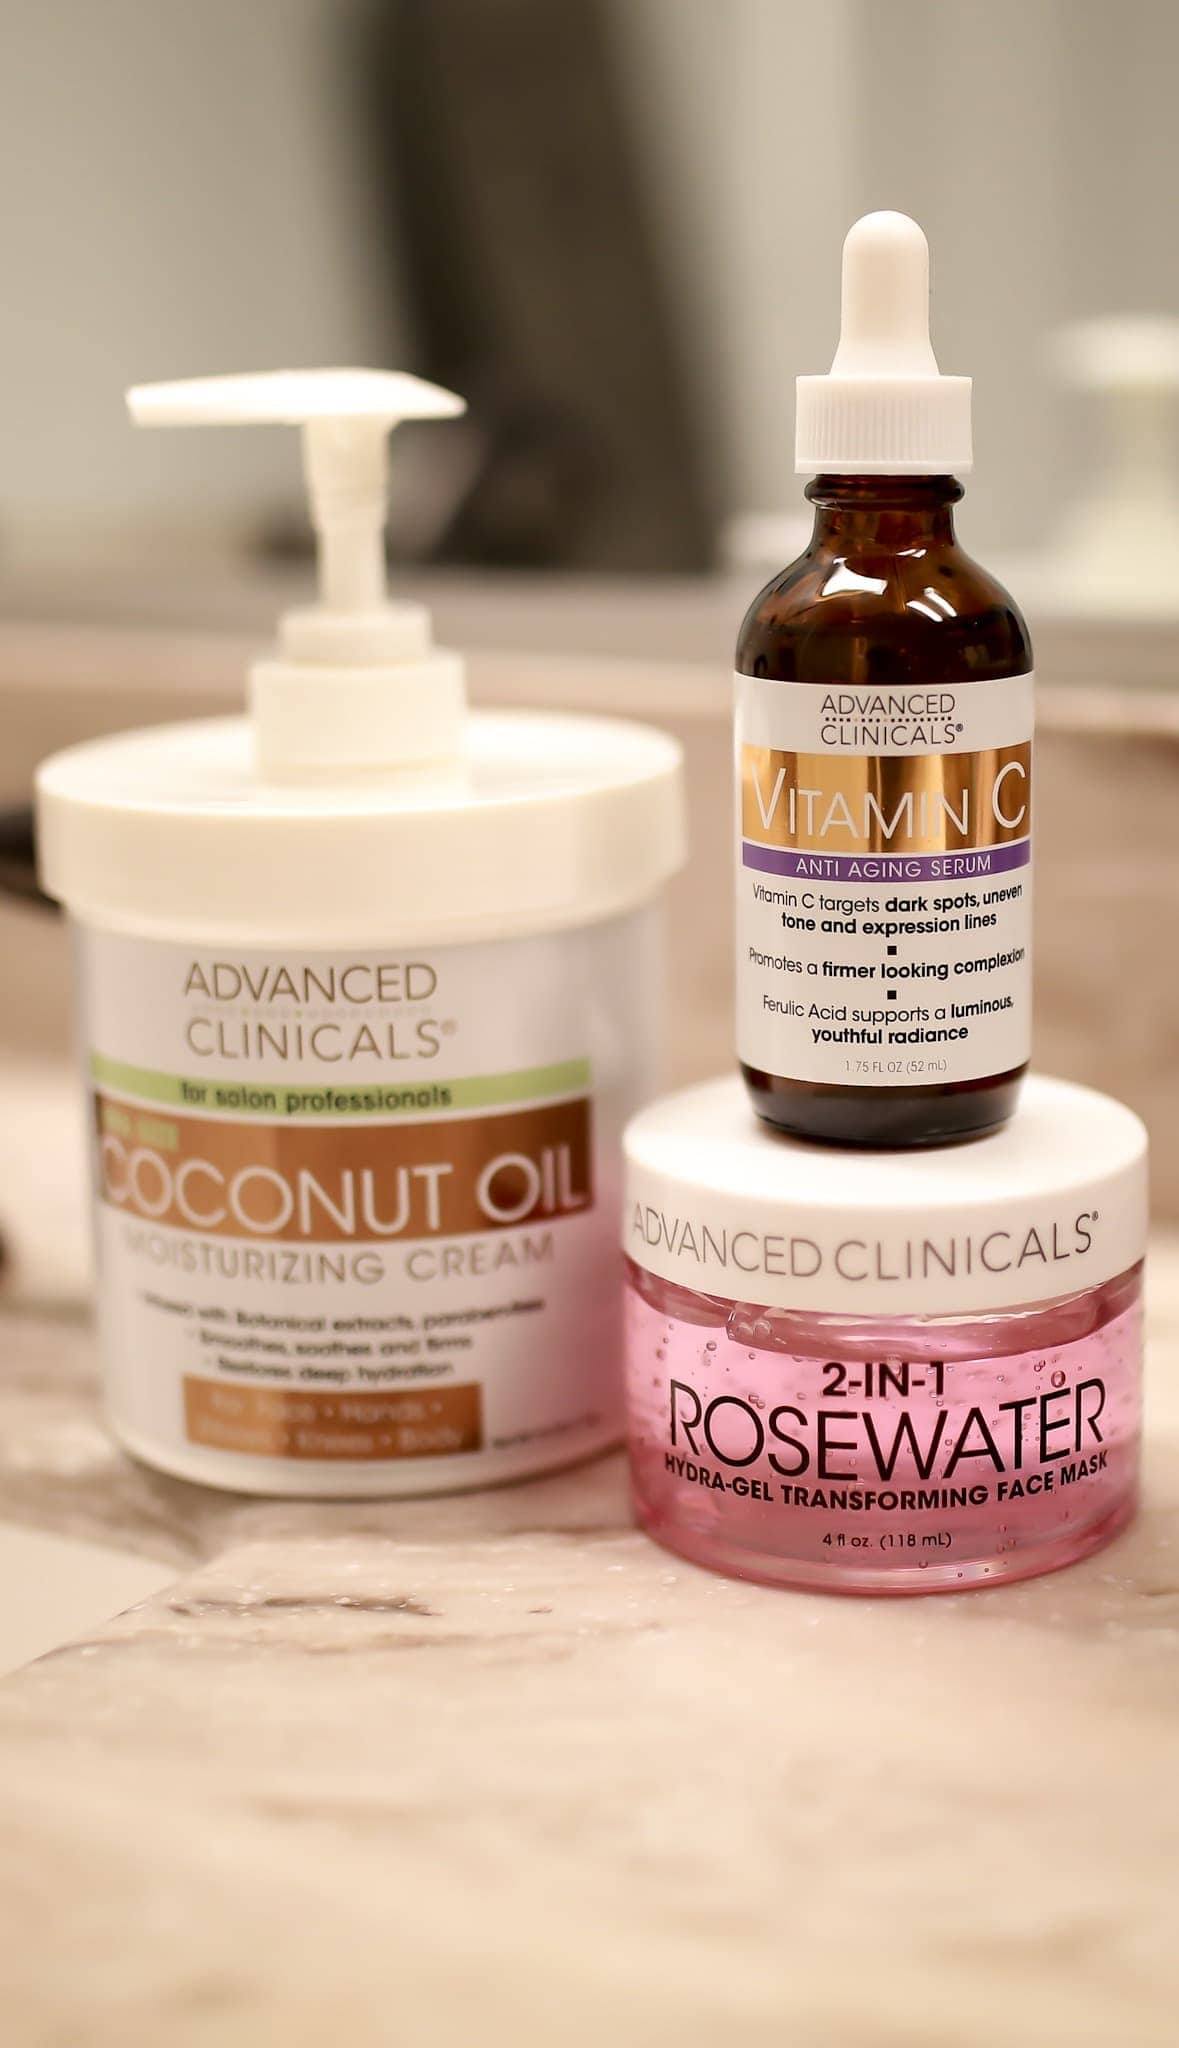 #vitamincserum #coconutoilskincare You've heard great things about this local brand but have you read the Advanced Clinicals Reviews? I put the vitamin c serum, coconut oil cream and rosewater mask to the test. Here's what I found out! #facemaskforwrinkles